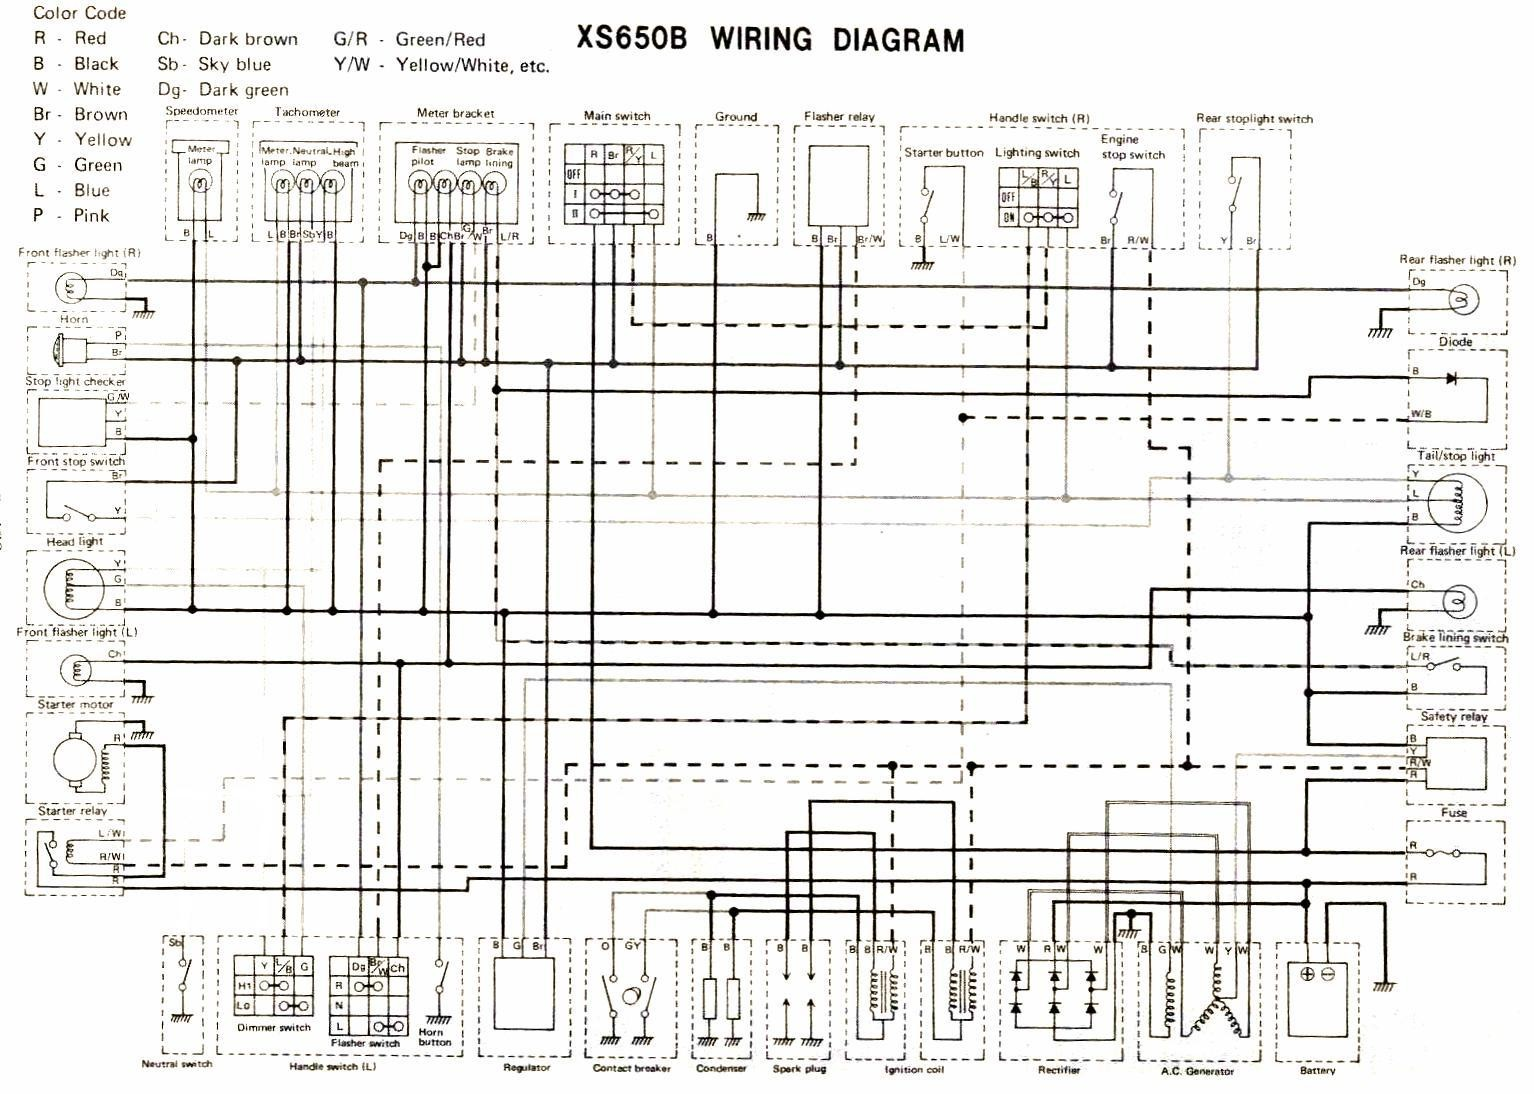 hight resolution of yamaha v star 650 wiring diagram wire center u2022 rh 144 202 61 13 motorcycle turn